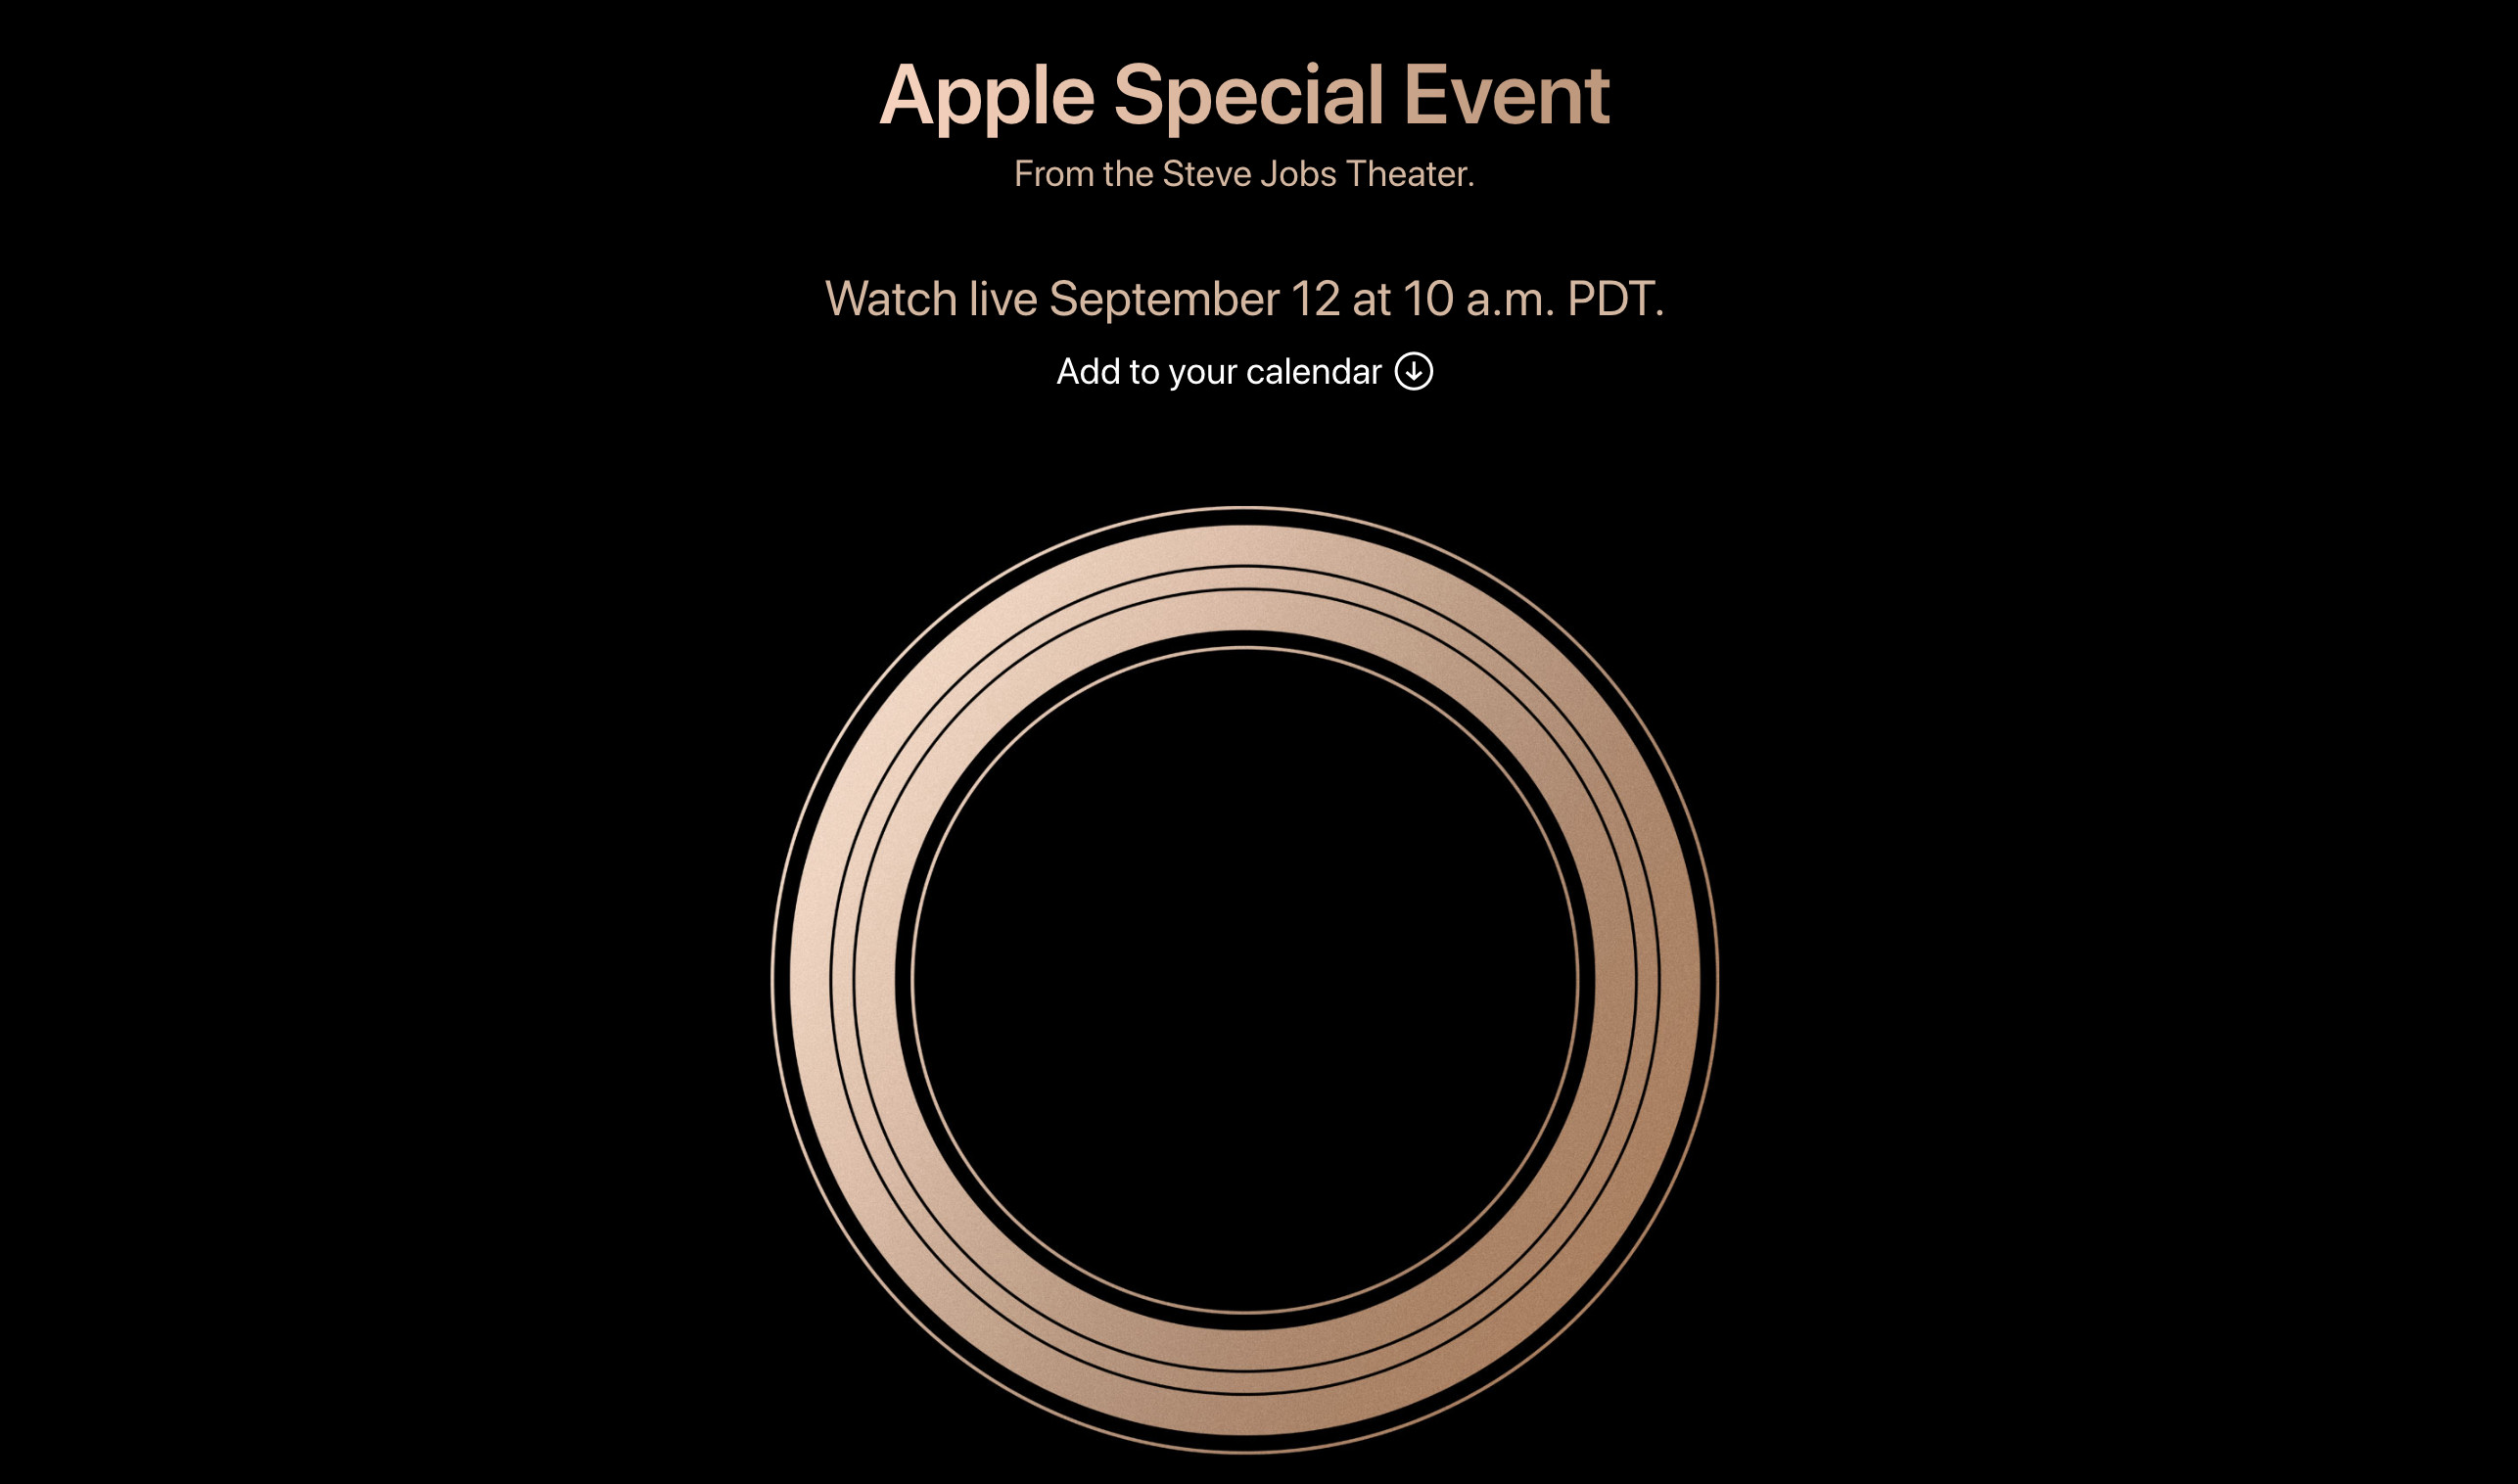 Apple Watch Series 4 is Compatible with Series 1, 2, 3 Bands